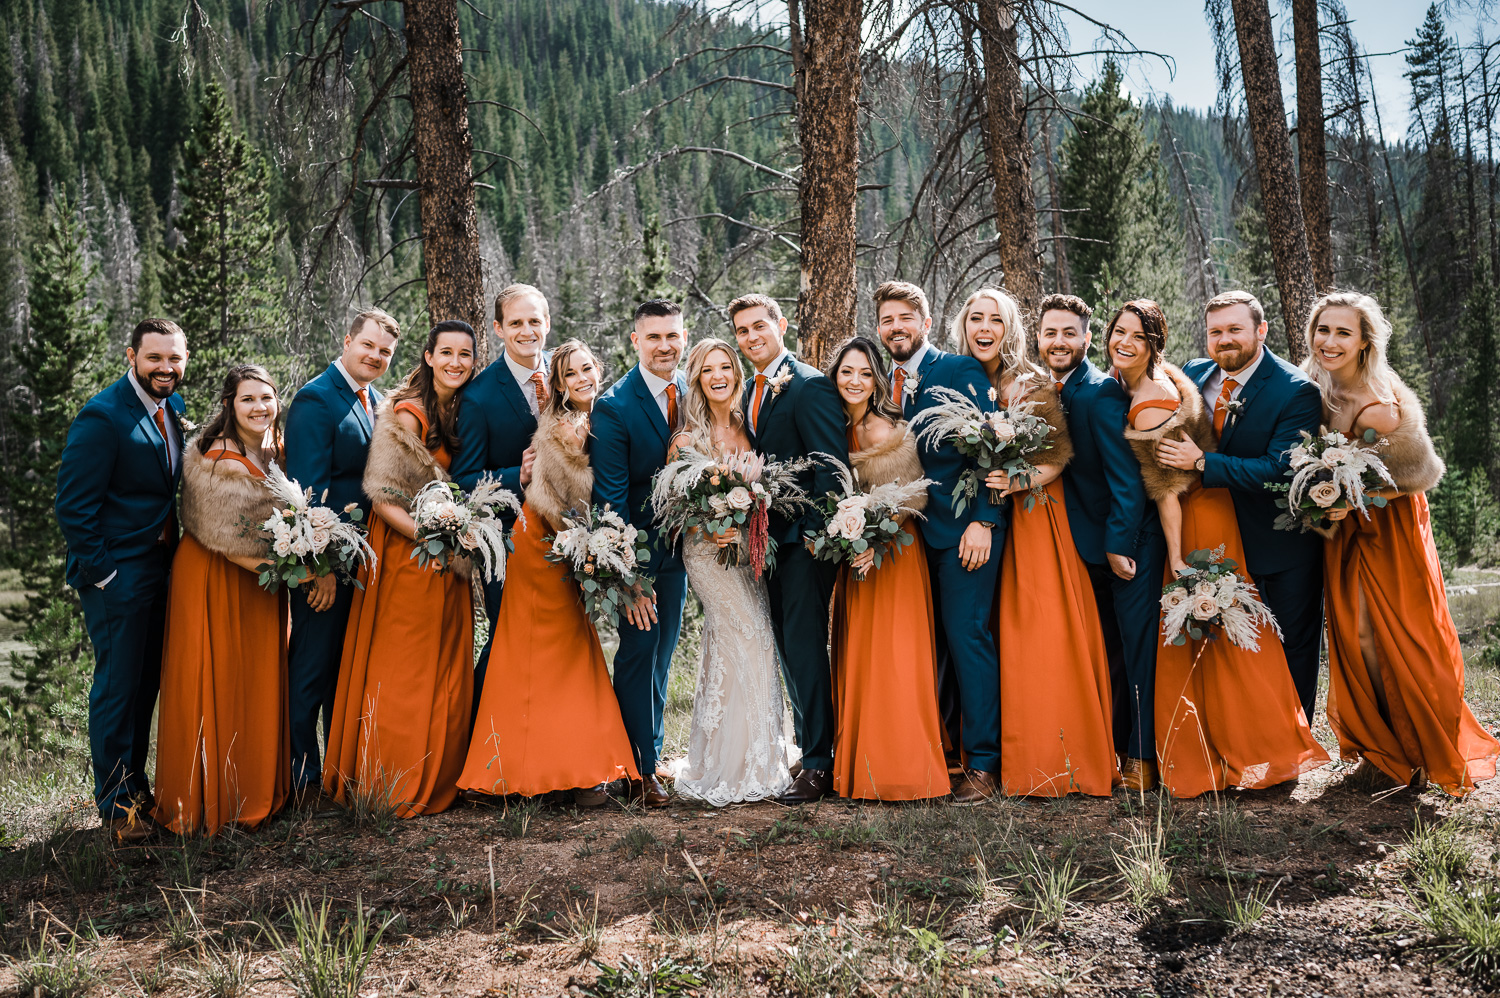 Bridal party squeezes into bride and groom, wearing rust and blue colors